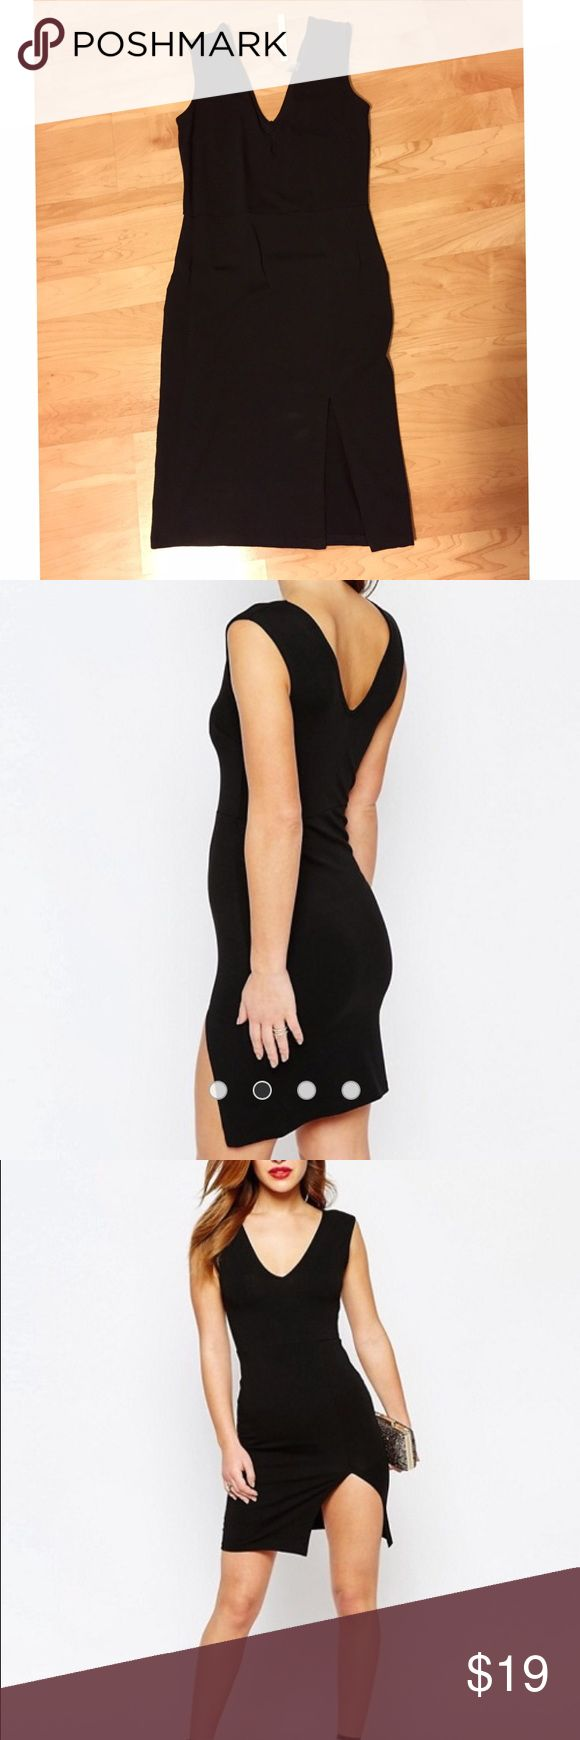 (NWT) ASOS Petite Bodycon Dress with Thigh Split New with tag, never worn. Material: stretch jersey. Size: UK 8 or US 4. True to size. Out of stock online ASOS Dresses Mini